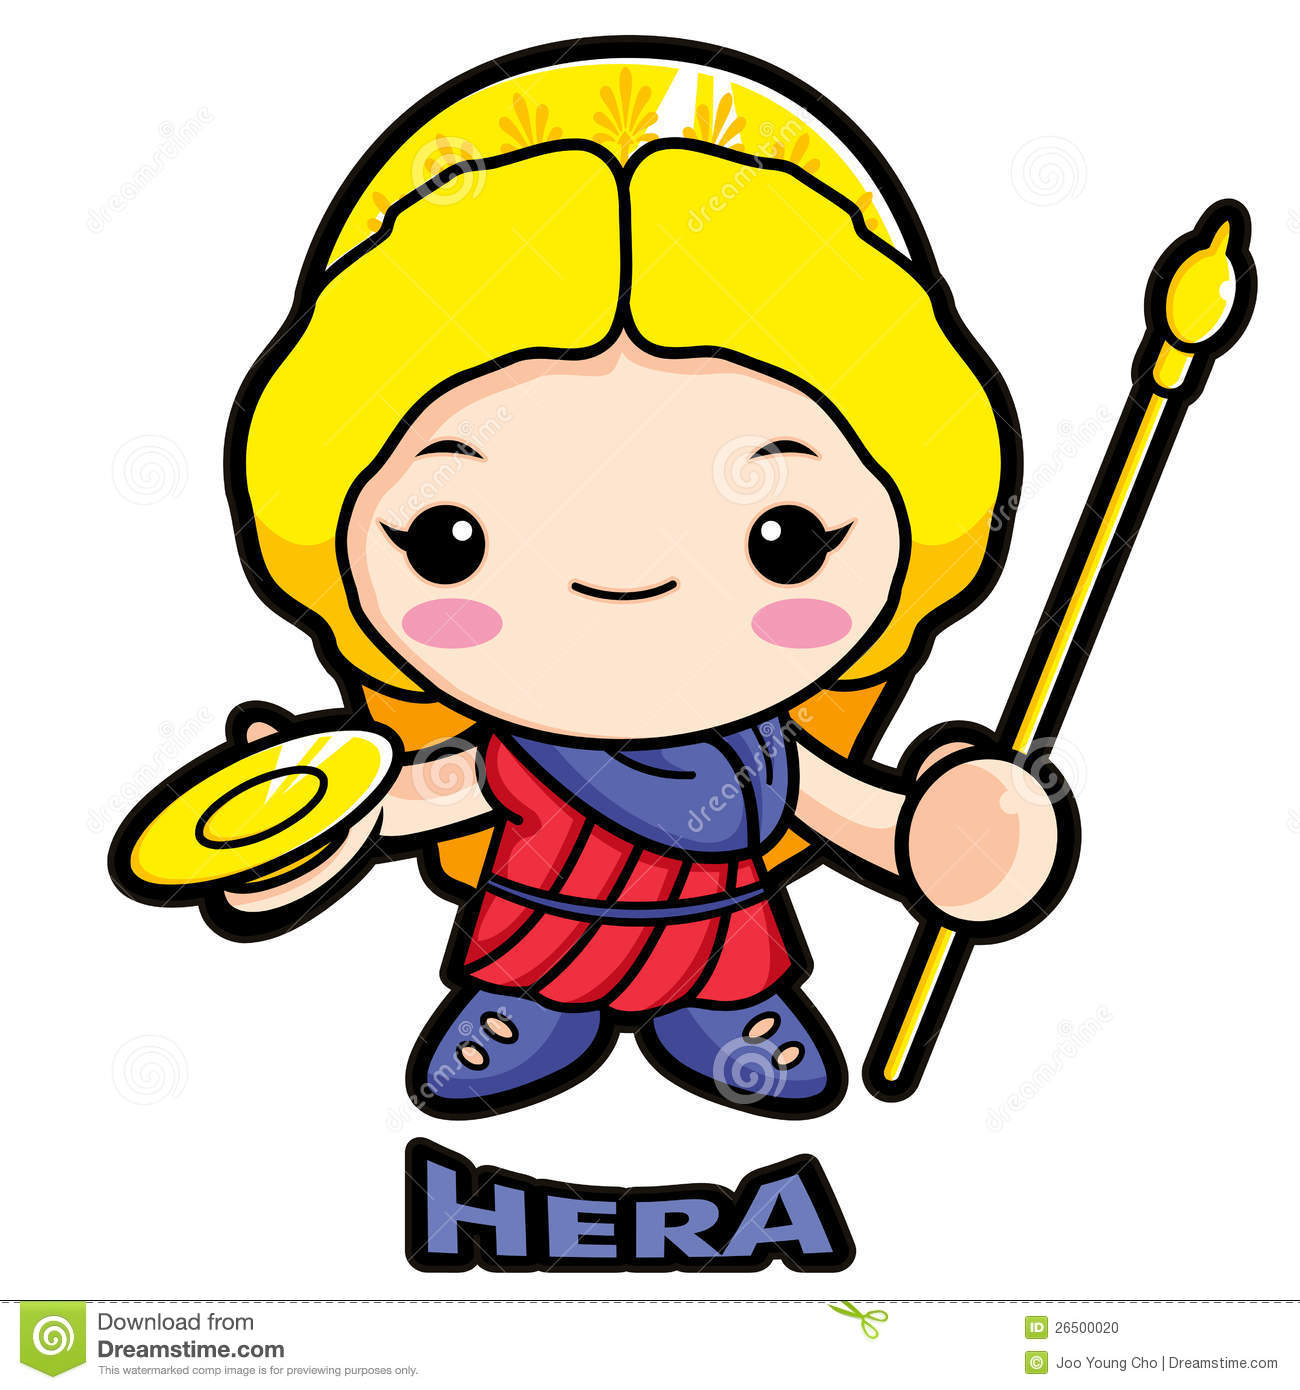 Goddess clipart Clipart Goddess Greek Hestia Greek